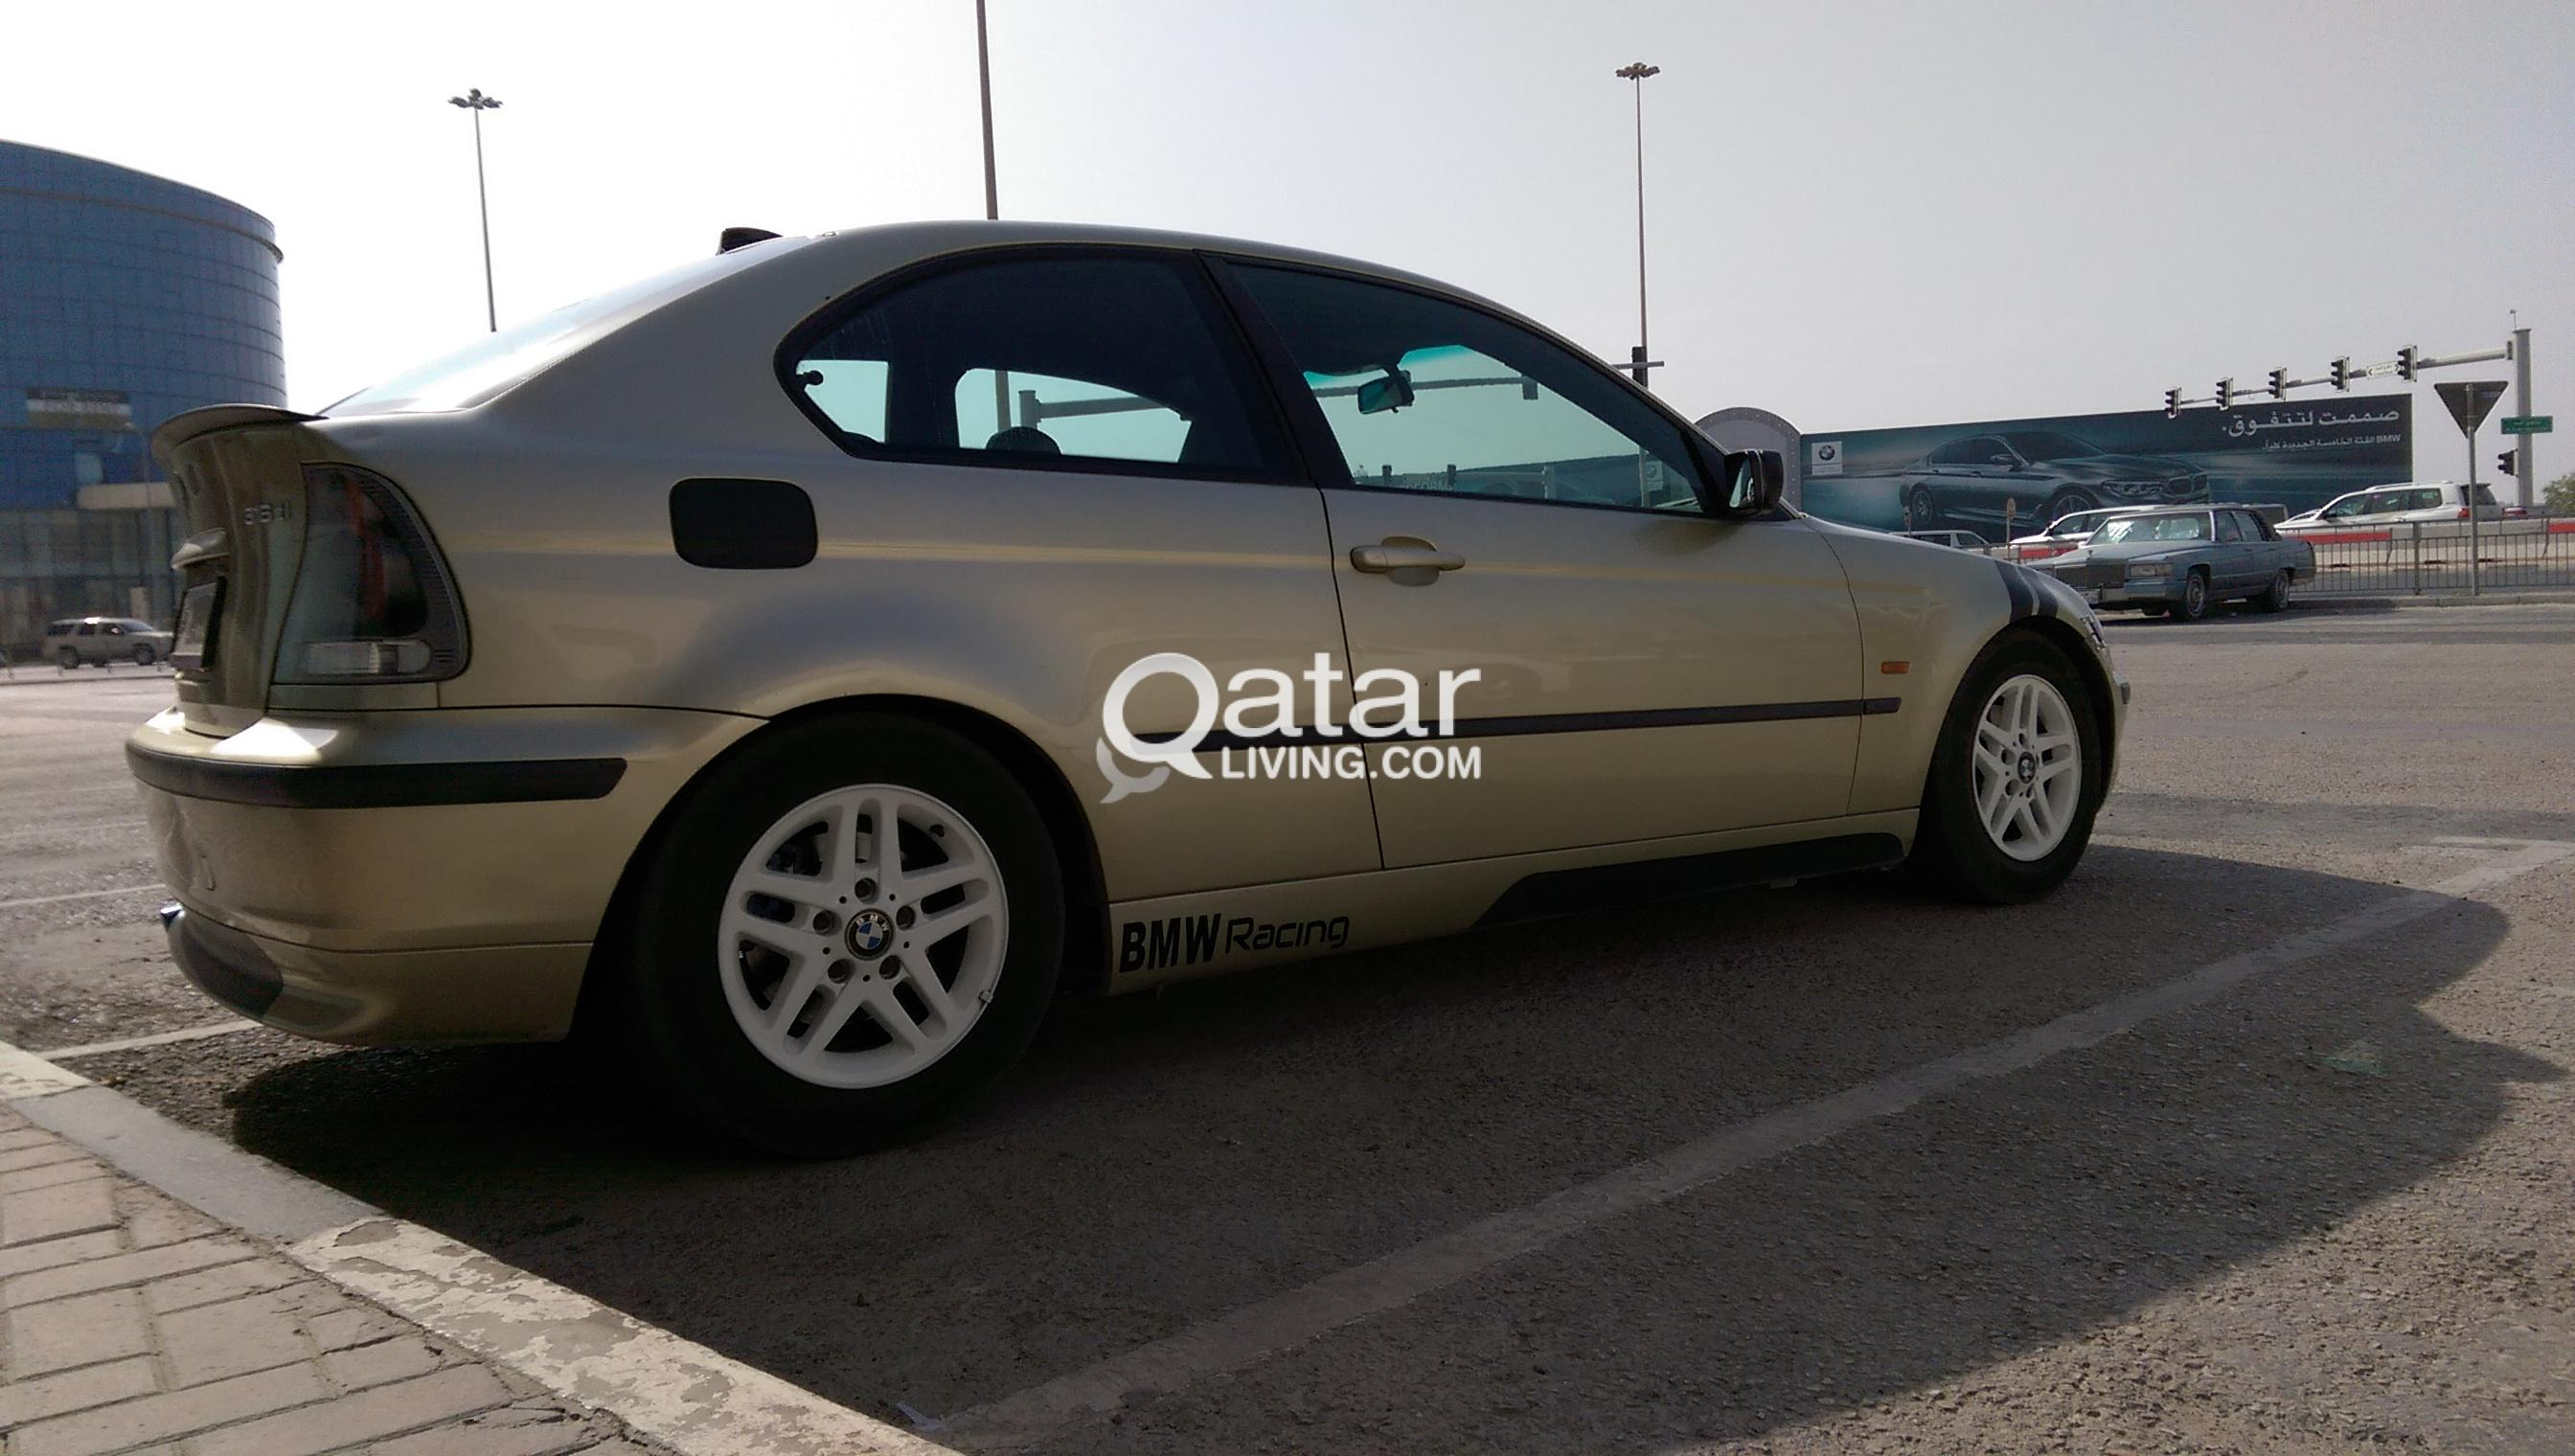 BMW coupe sports, very rare car low mileage   Qatar Living